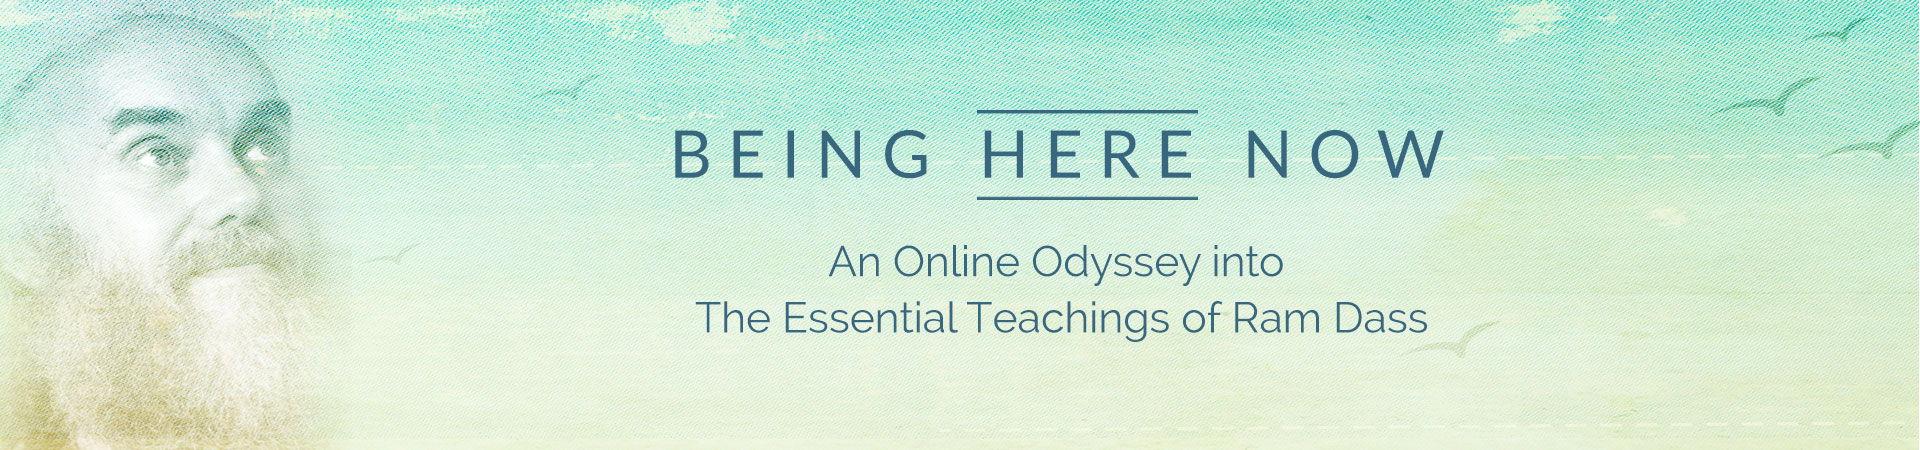 Being Here Now - Essential Teachings of Ram Dass